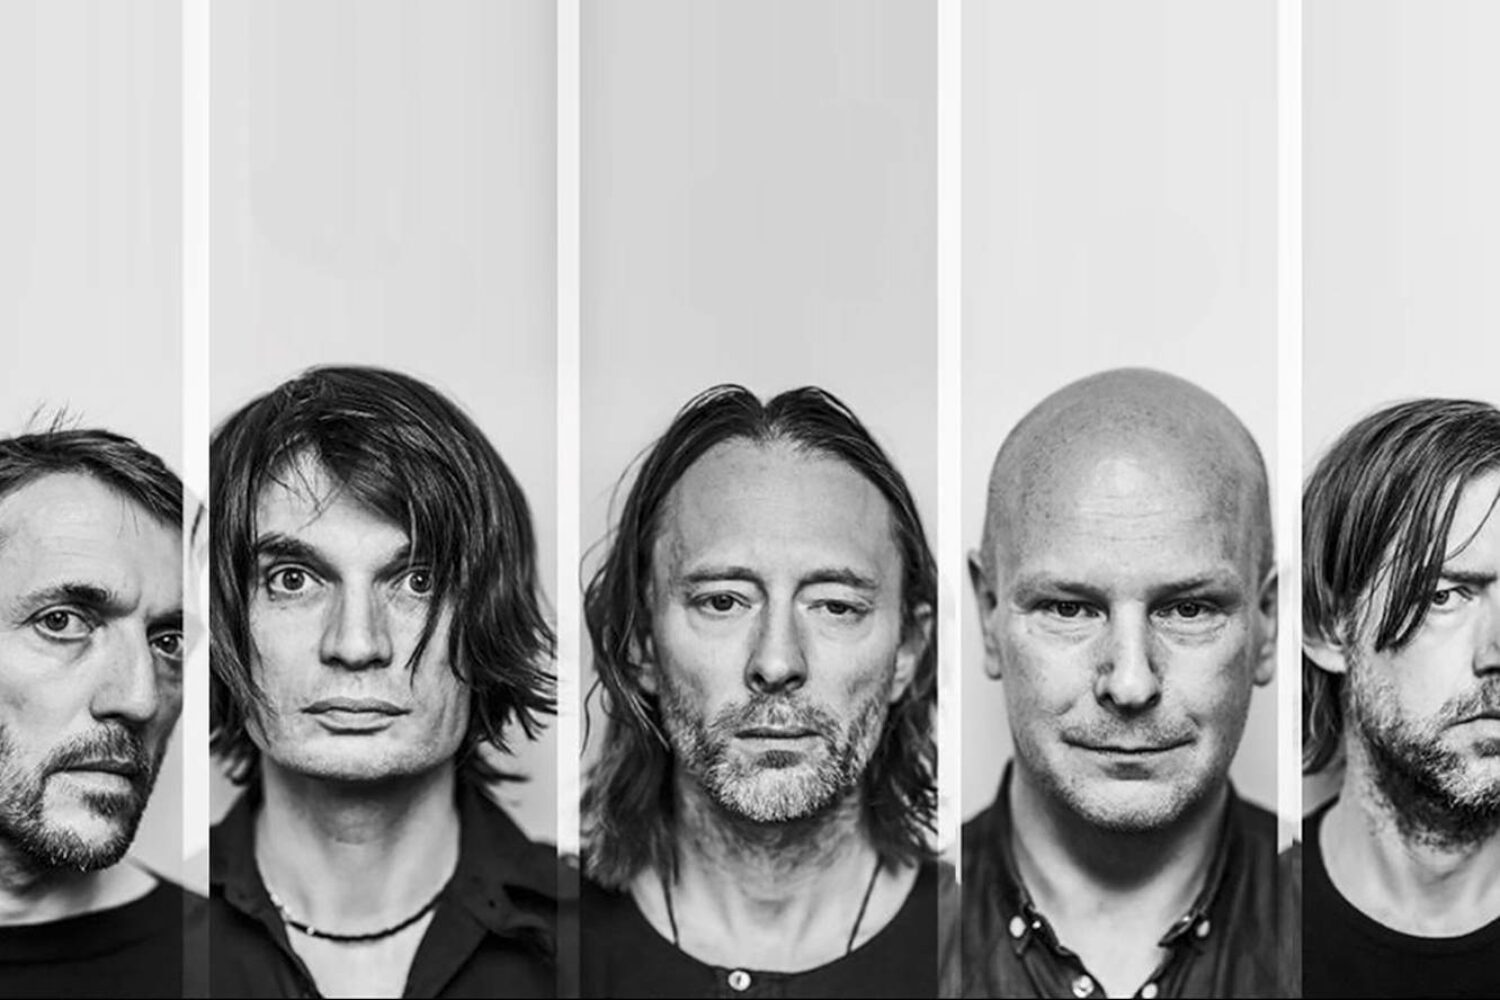 Radiohead confirm 'KID A MNESIA' collection